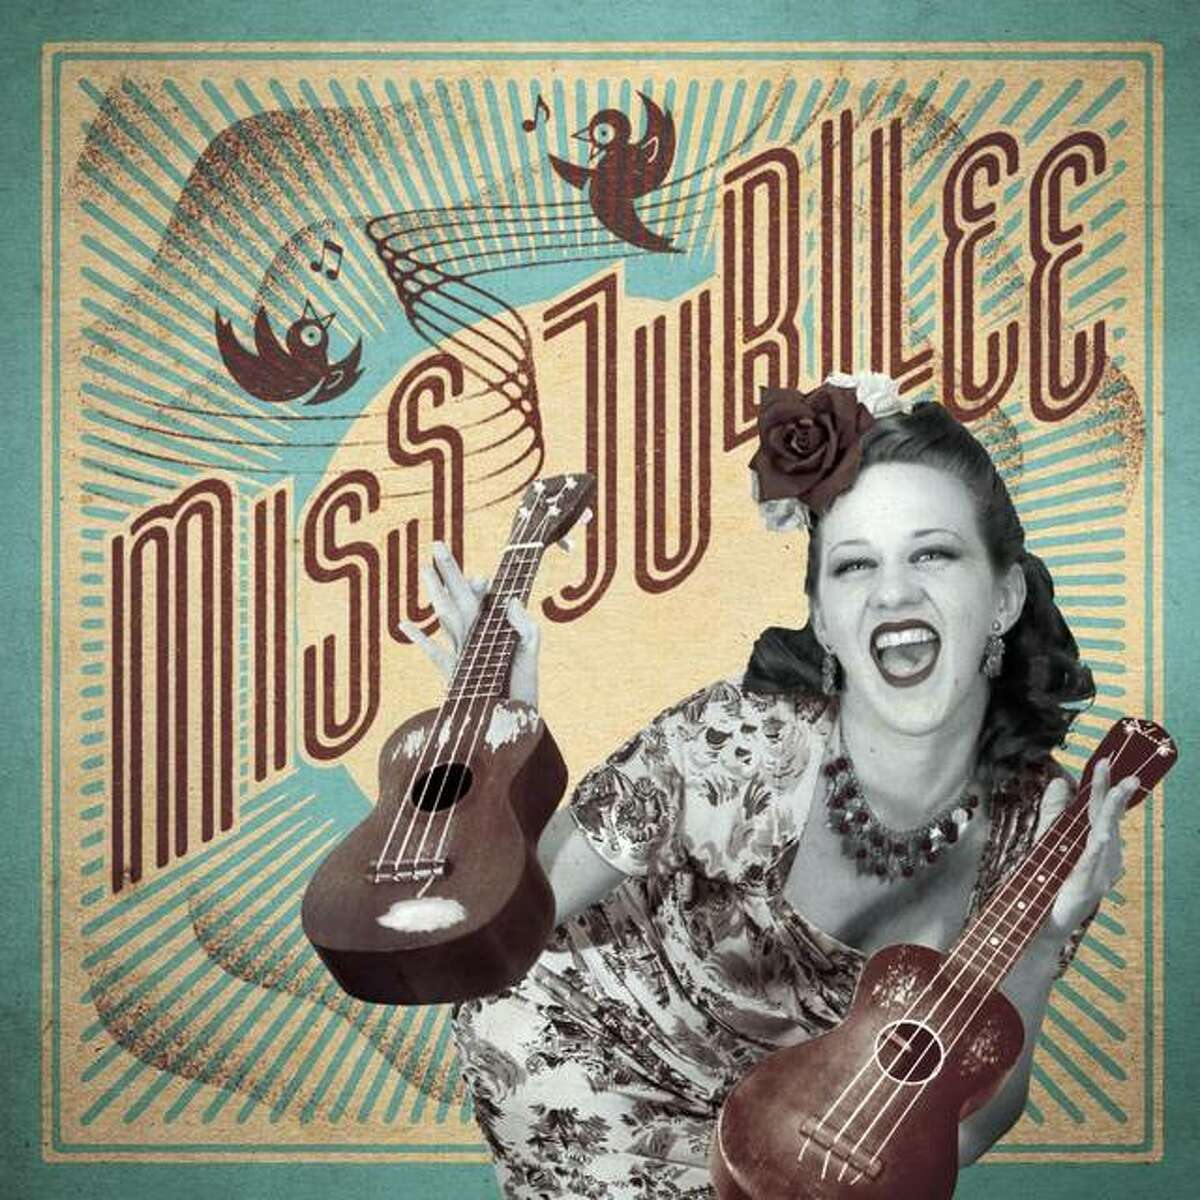 Miss Jubilee features vocalist Valerie Kirchhoff; Dan Conner on drums and washboard; Ethan Leinwand on piano; Ken Cebrian on trumpet; and, Richard Tralles on upright bass.